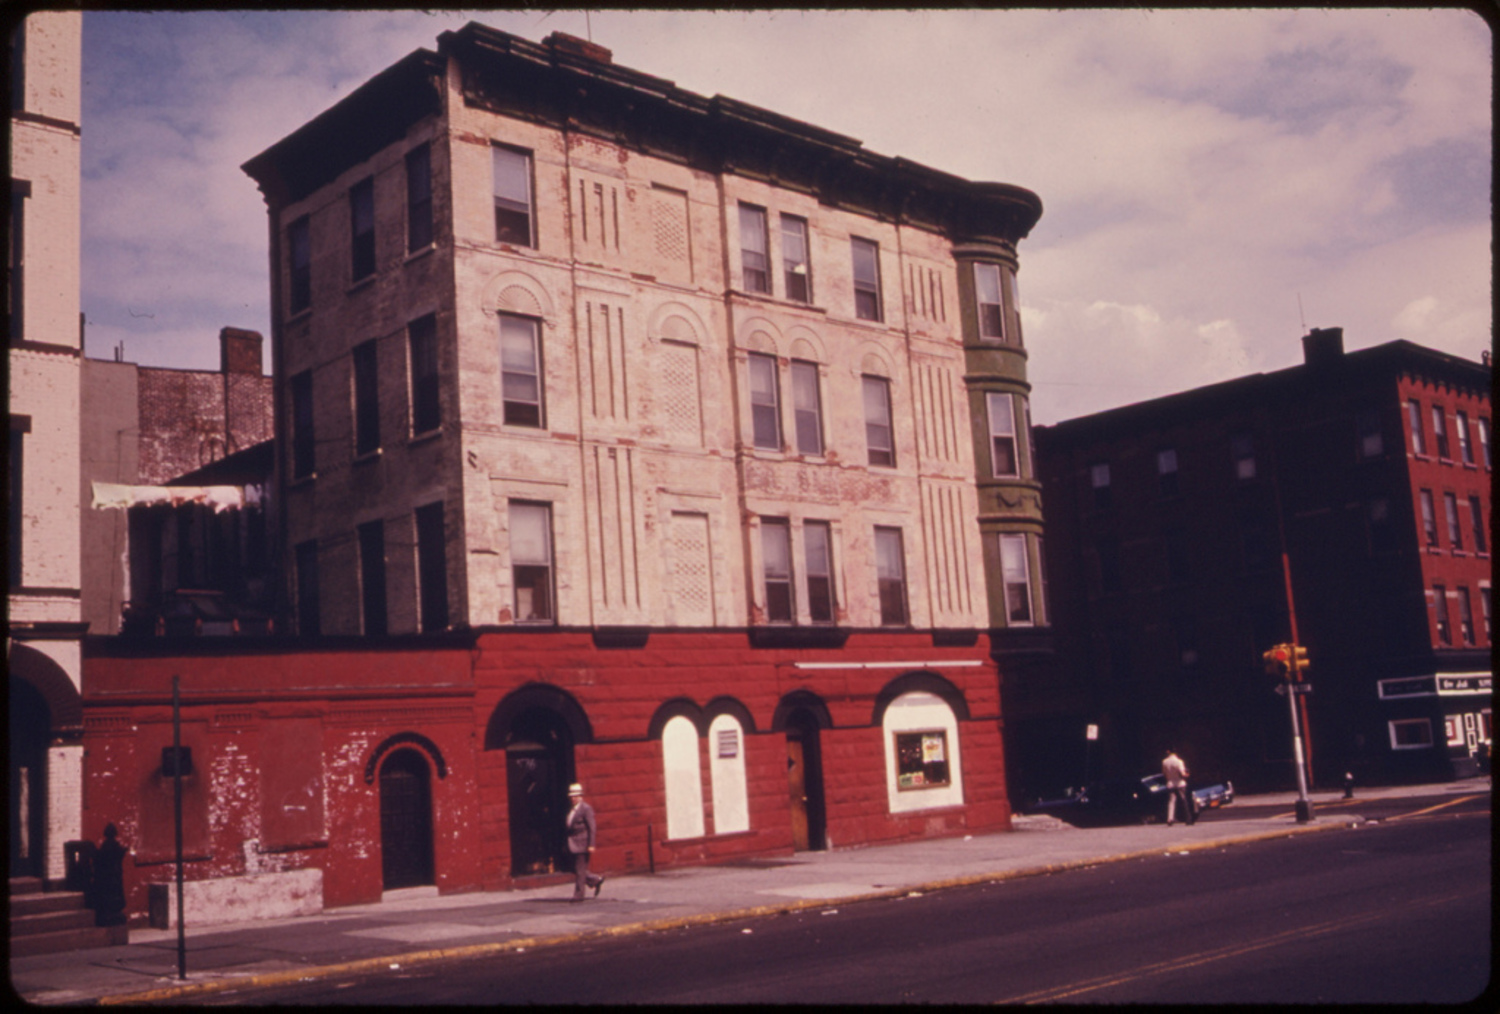 This is taken on Vanderbilt Avenue but I can't ascertain exactly here. Perhaps today's Prospect Heights area.